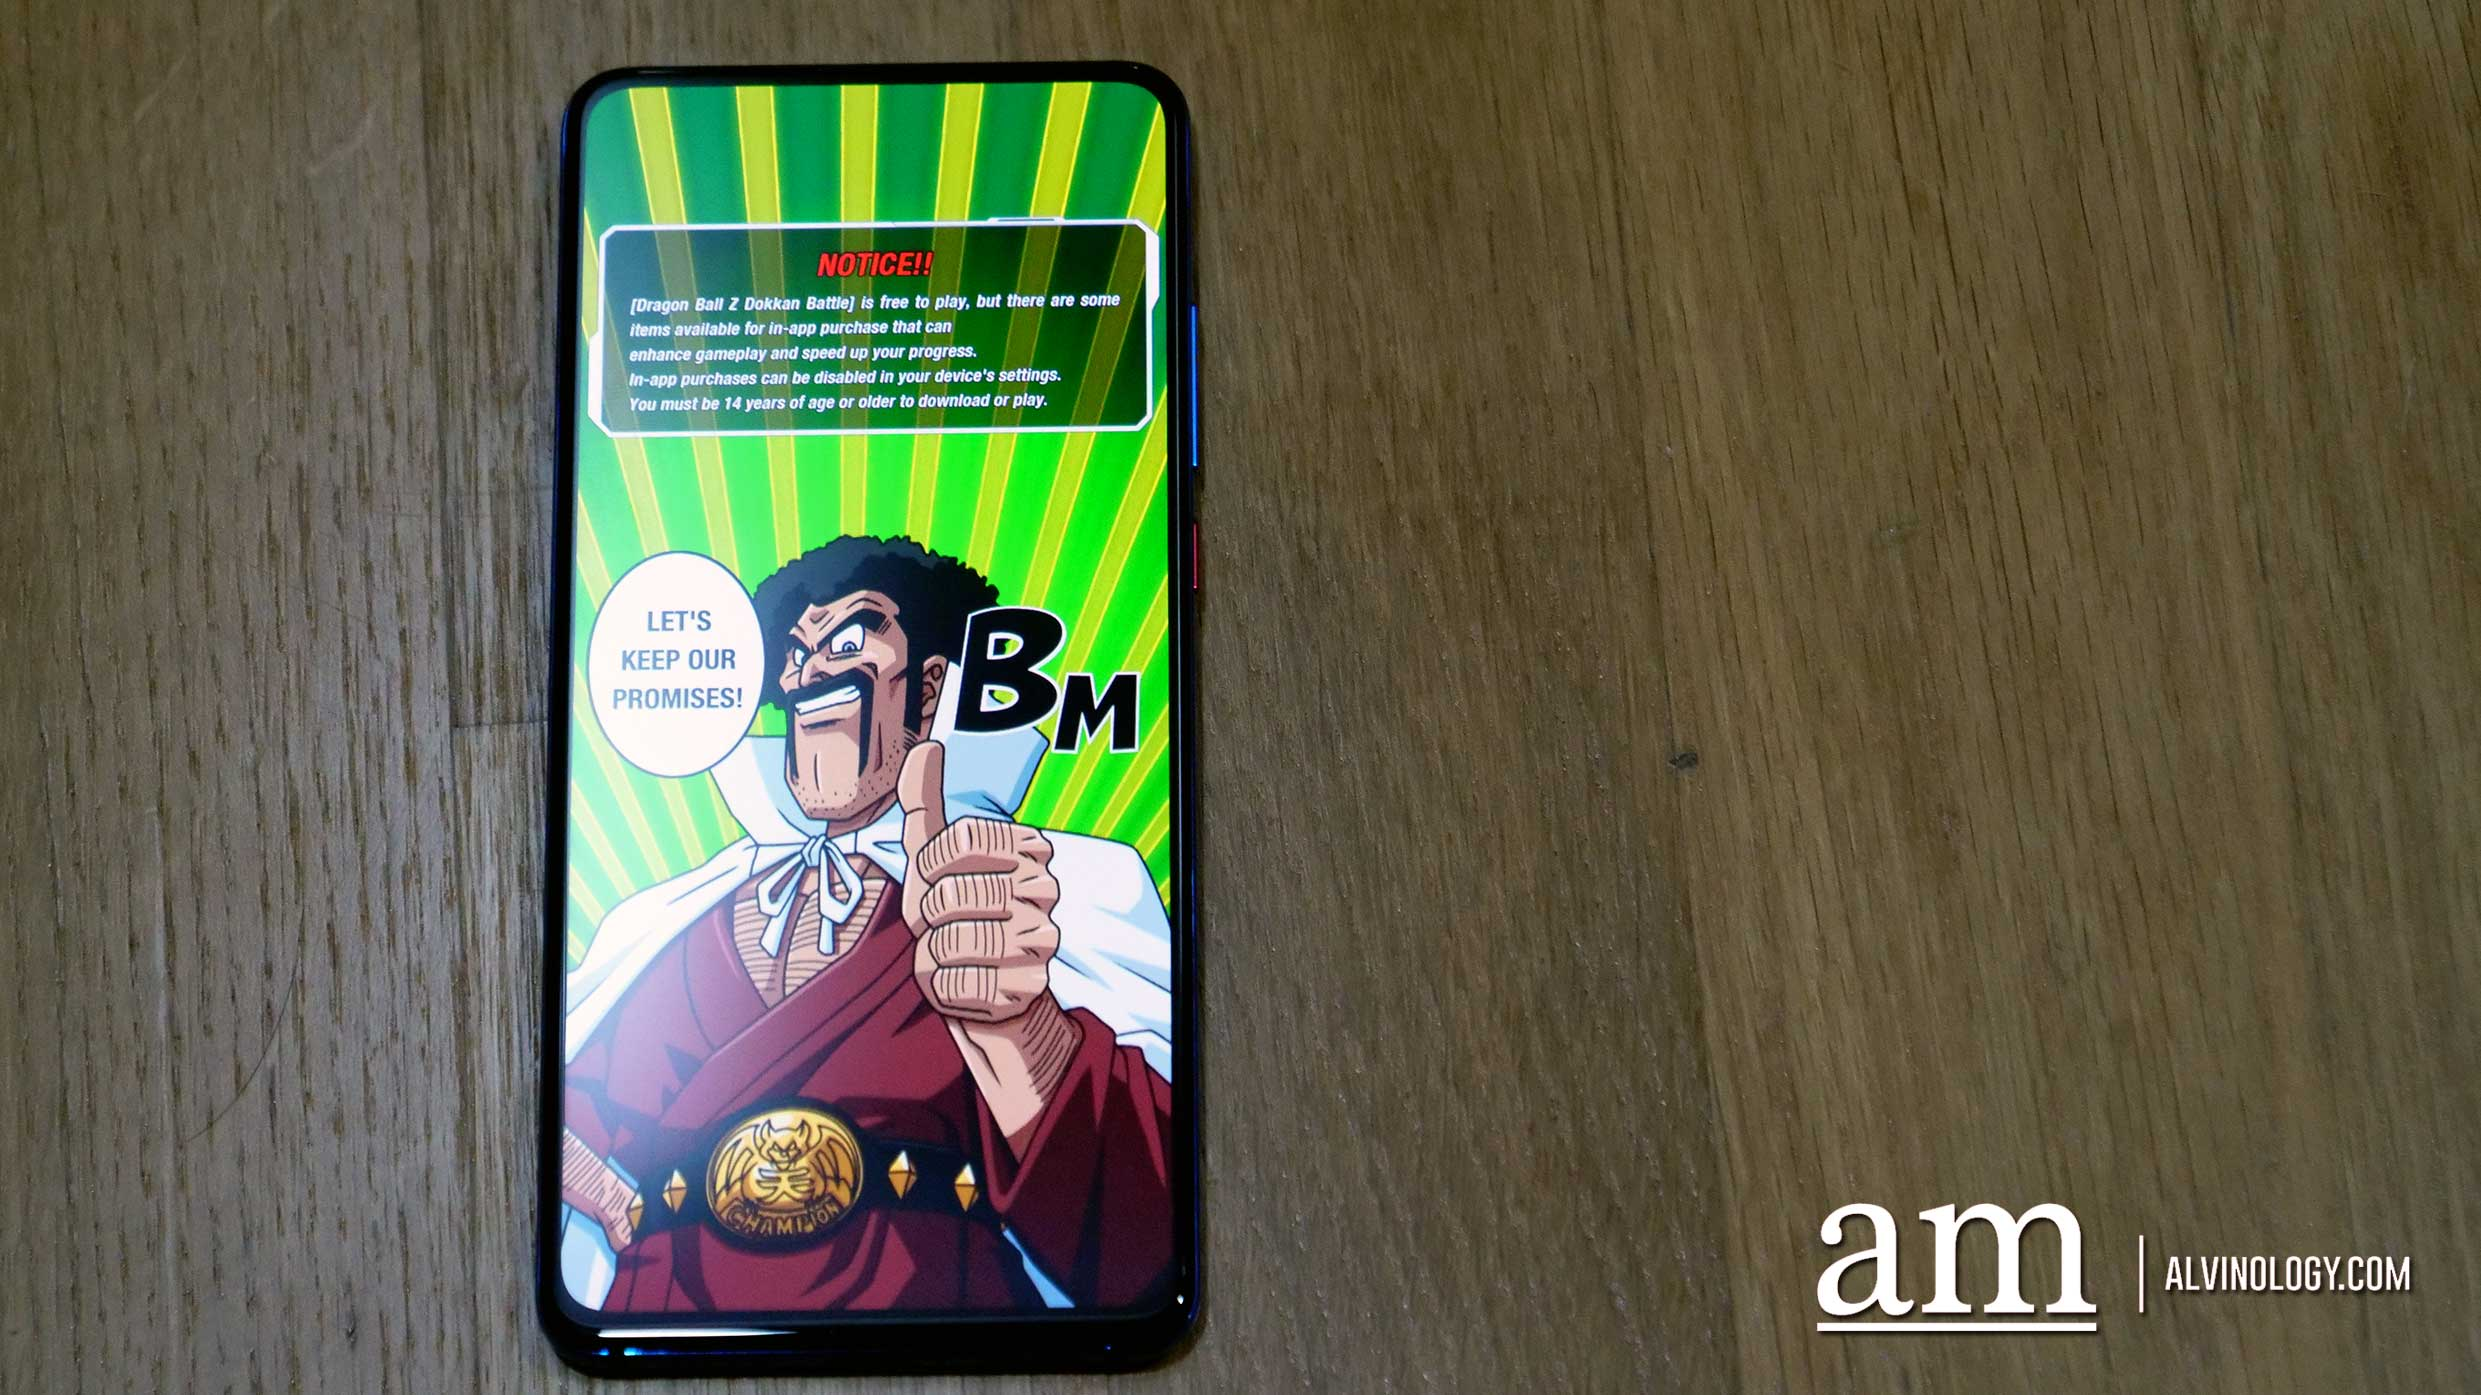 [Review] Xiaomi Mi 9T - Notch-less front screen, pop-up front camera and AI-powered triple rear cameras, all for under S$500 - Alvinology